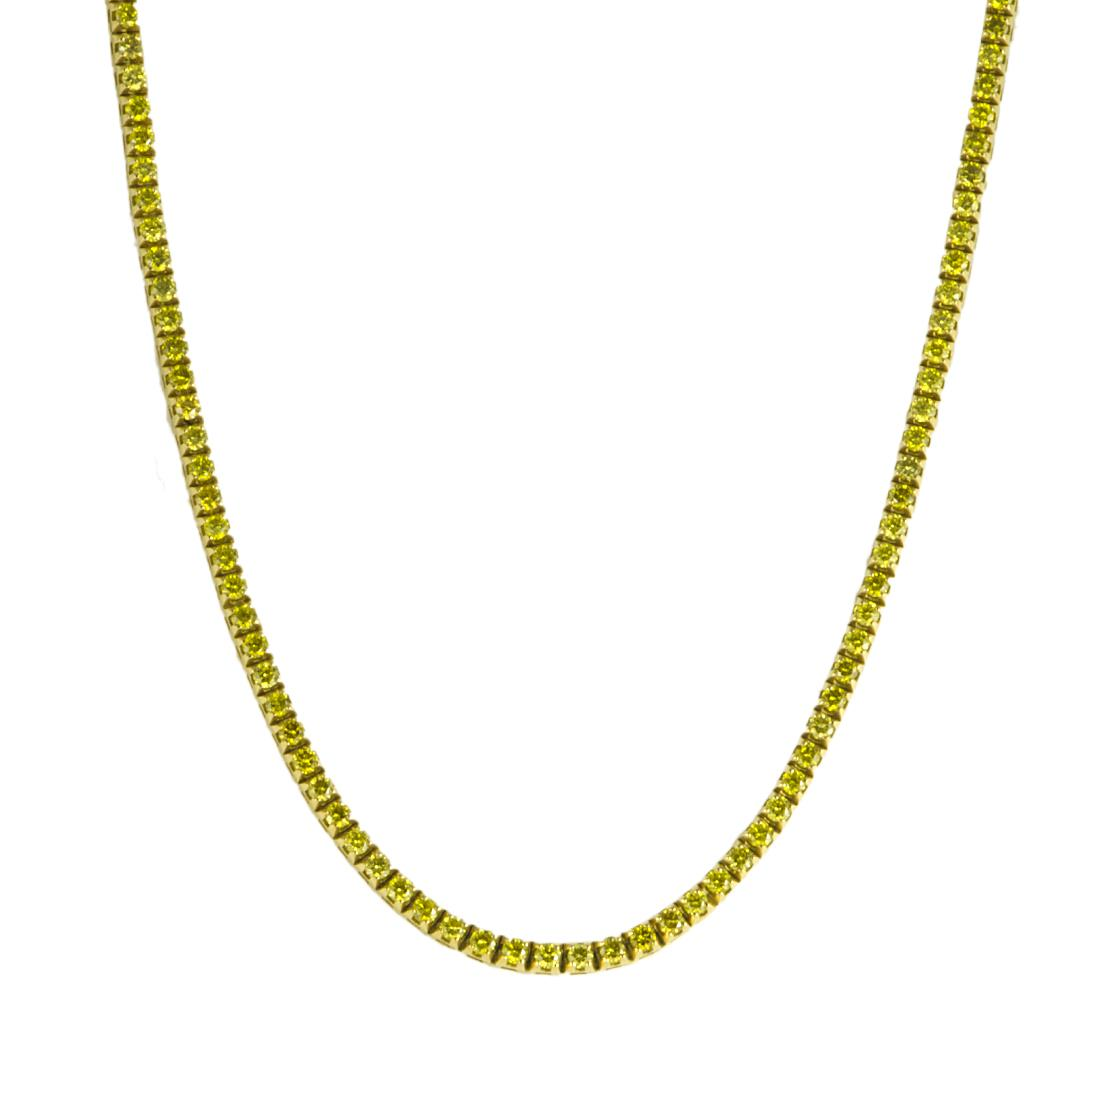 COLLIER IN ORO GIALLO E DIAMANTI CT 8,5 - ORO&CO